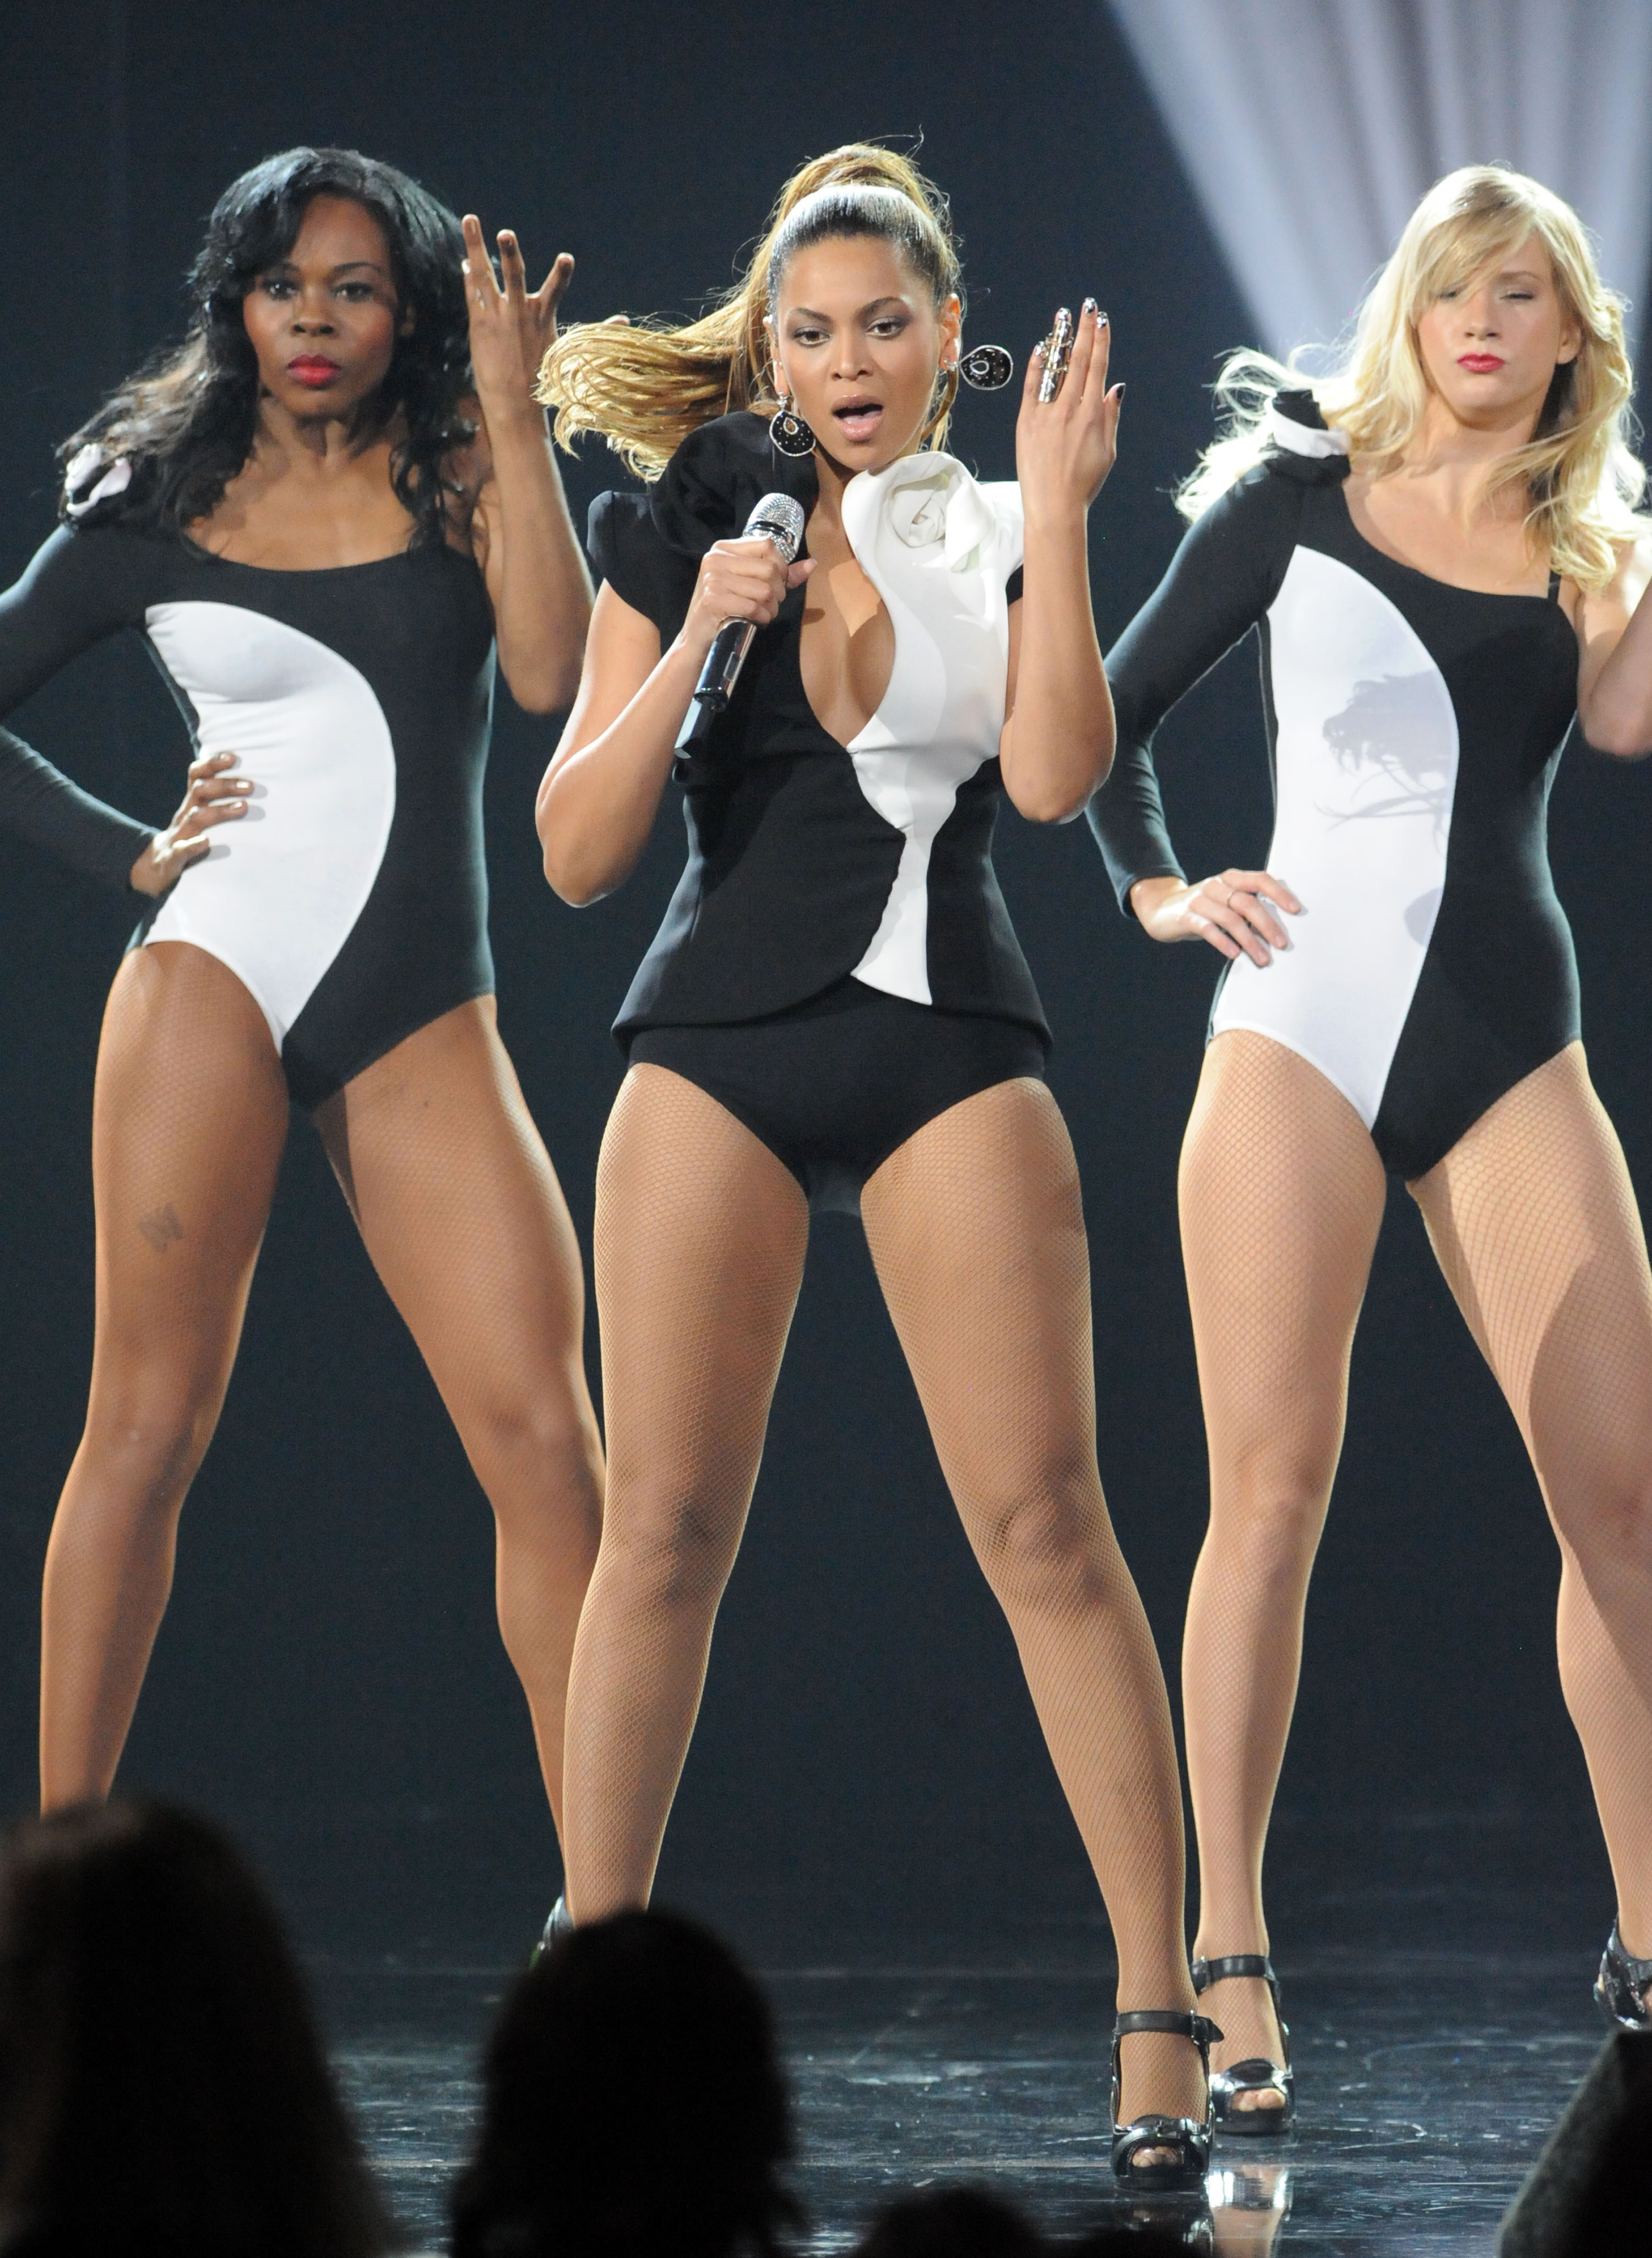 Beyonce Knowles performs onstage during the 2008 American Music Awards held at Nokia Theatre L.A. LIVE  in Los Angeles on Nov. 23, 2008.